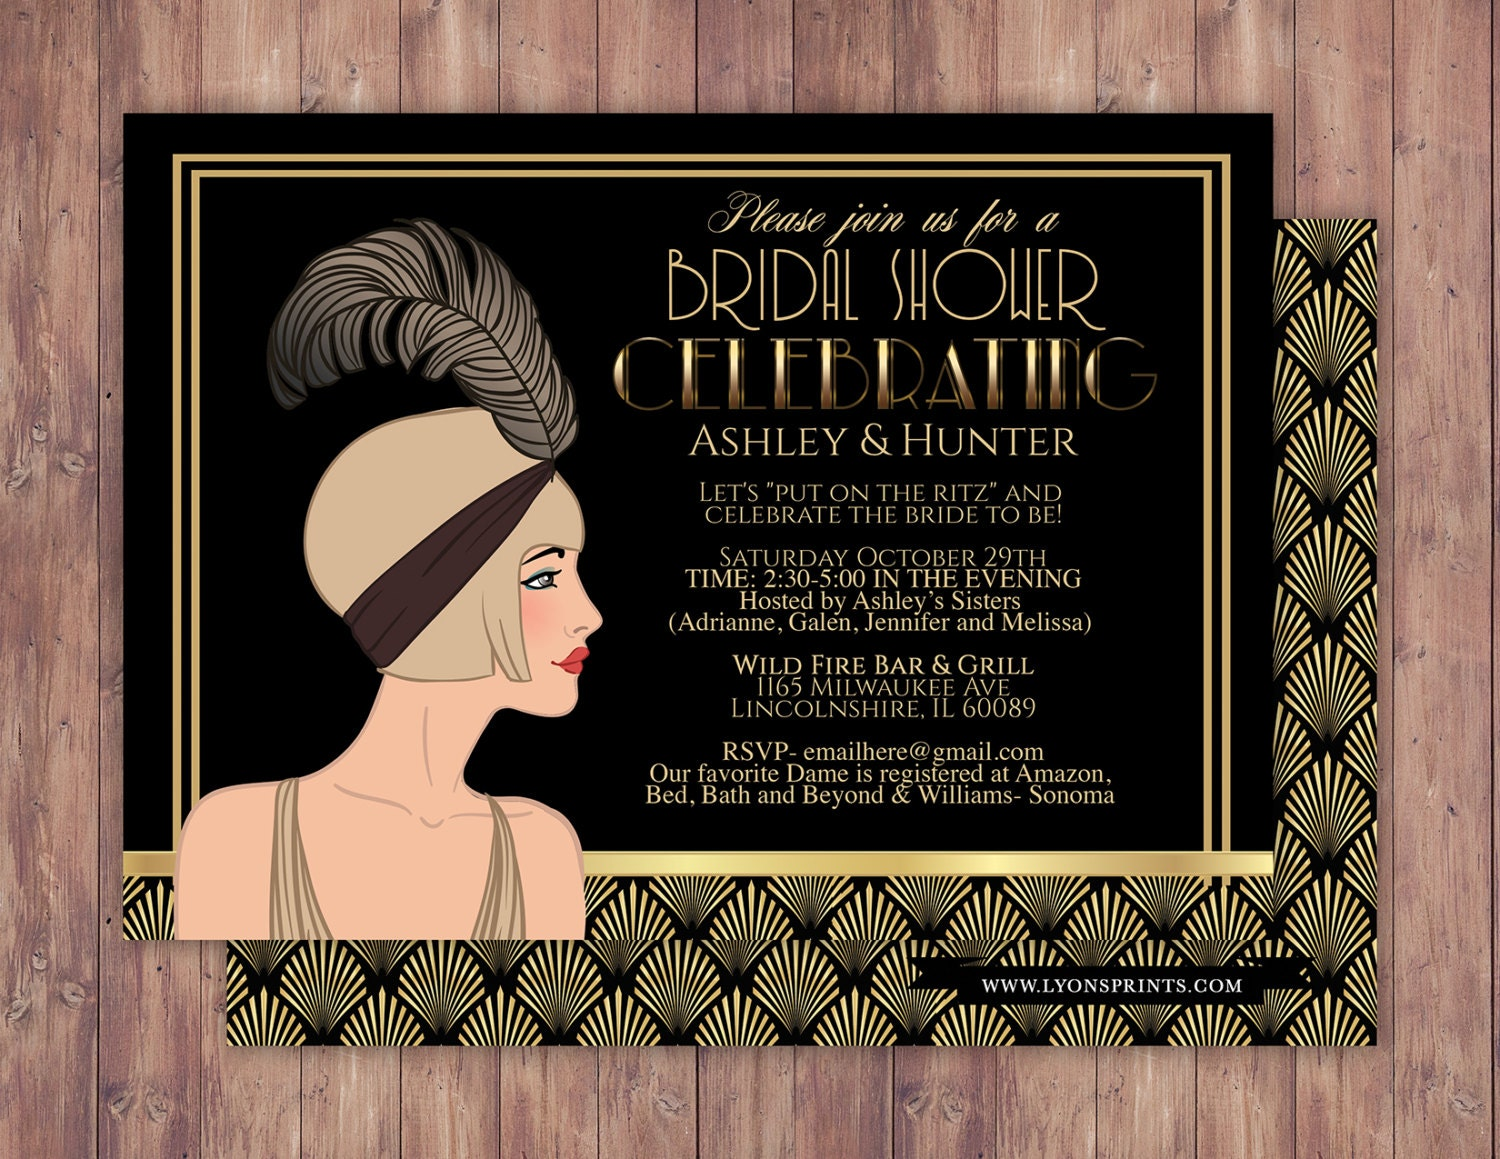 great gatsby wedding shower invitation hollywood film theme birthday party invite black and gold glam printable digital invite bridal